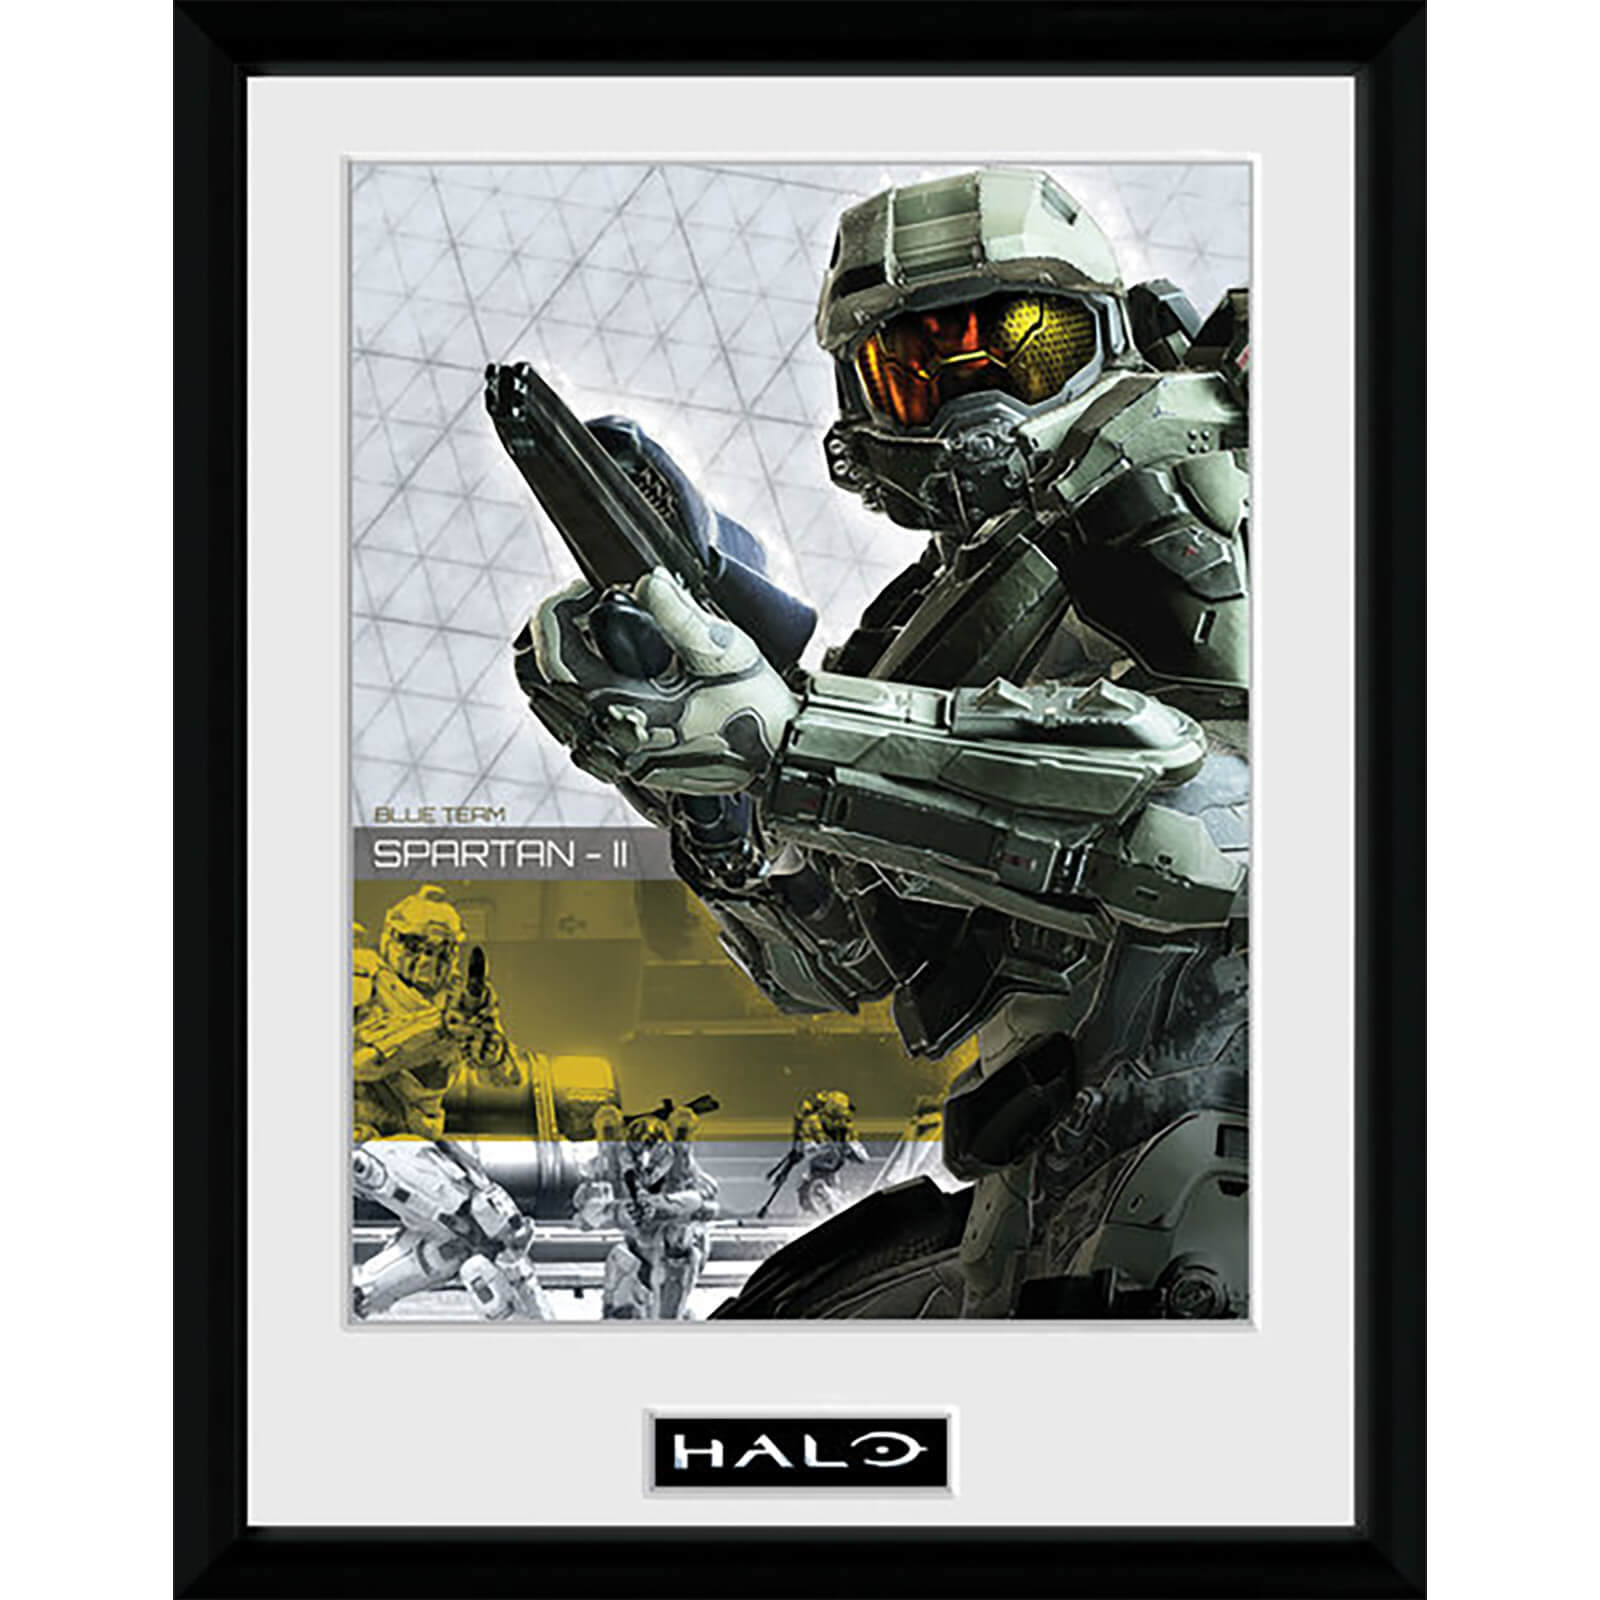 Halo Spartan - 16 x 12 Inches Framed Photograph